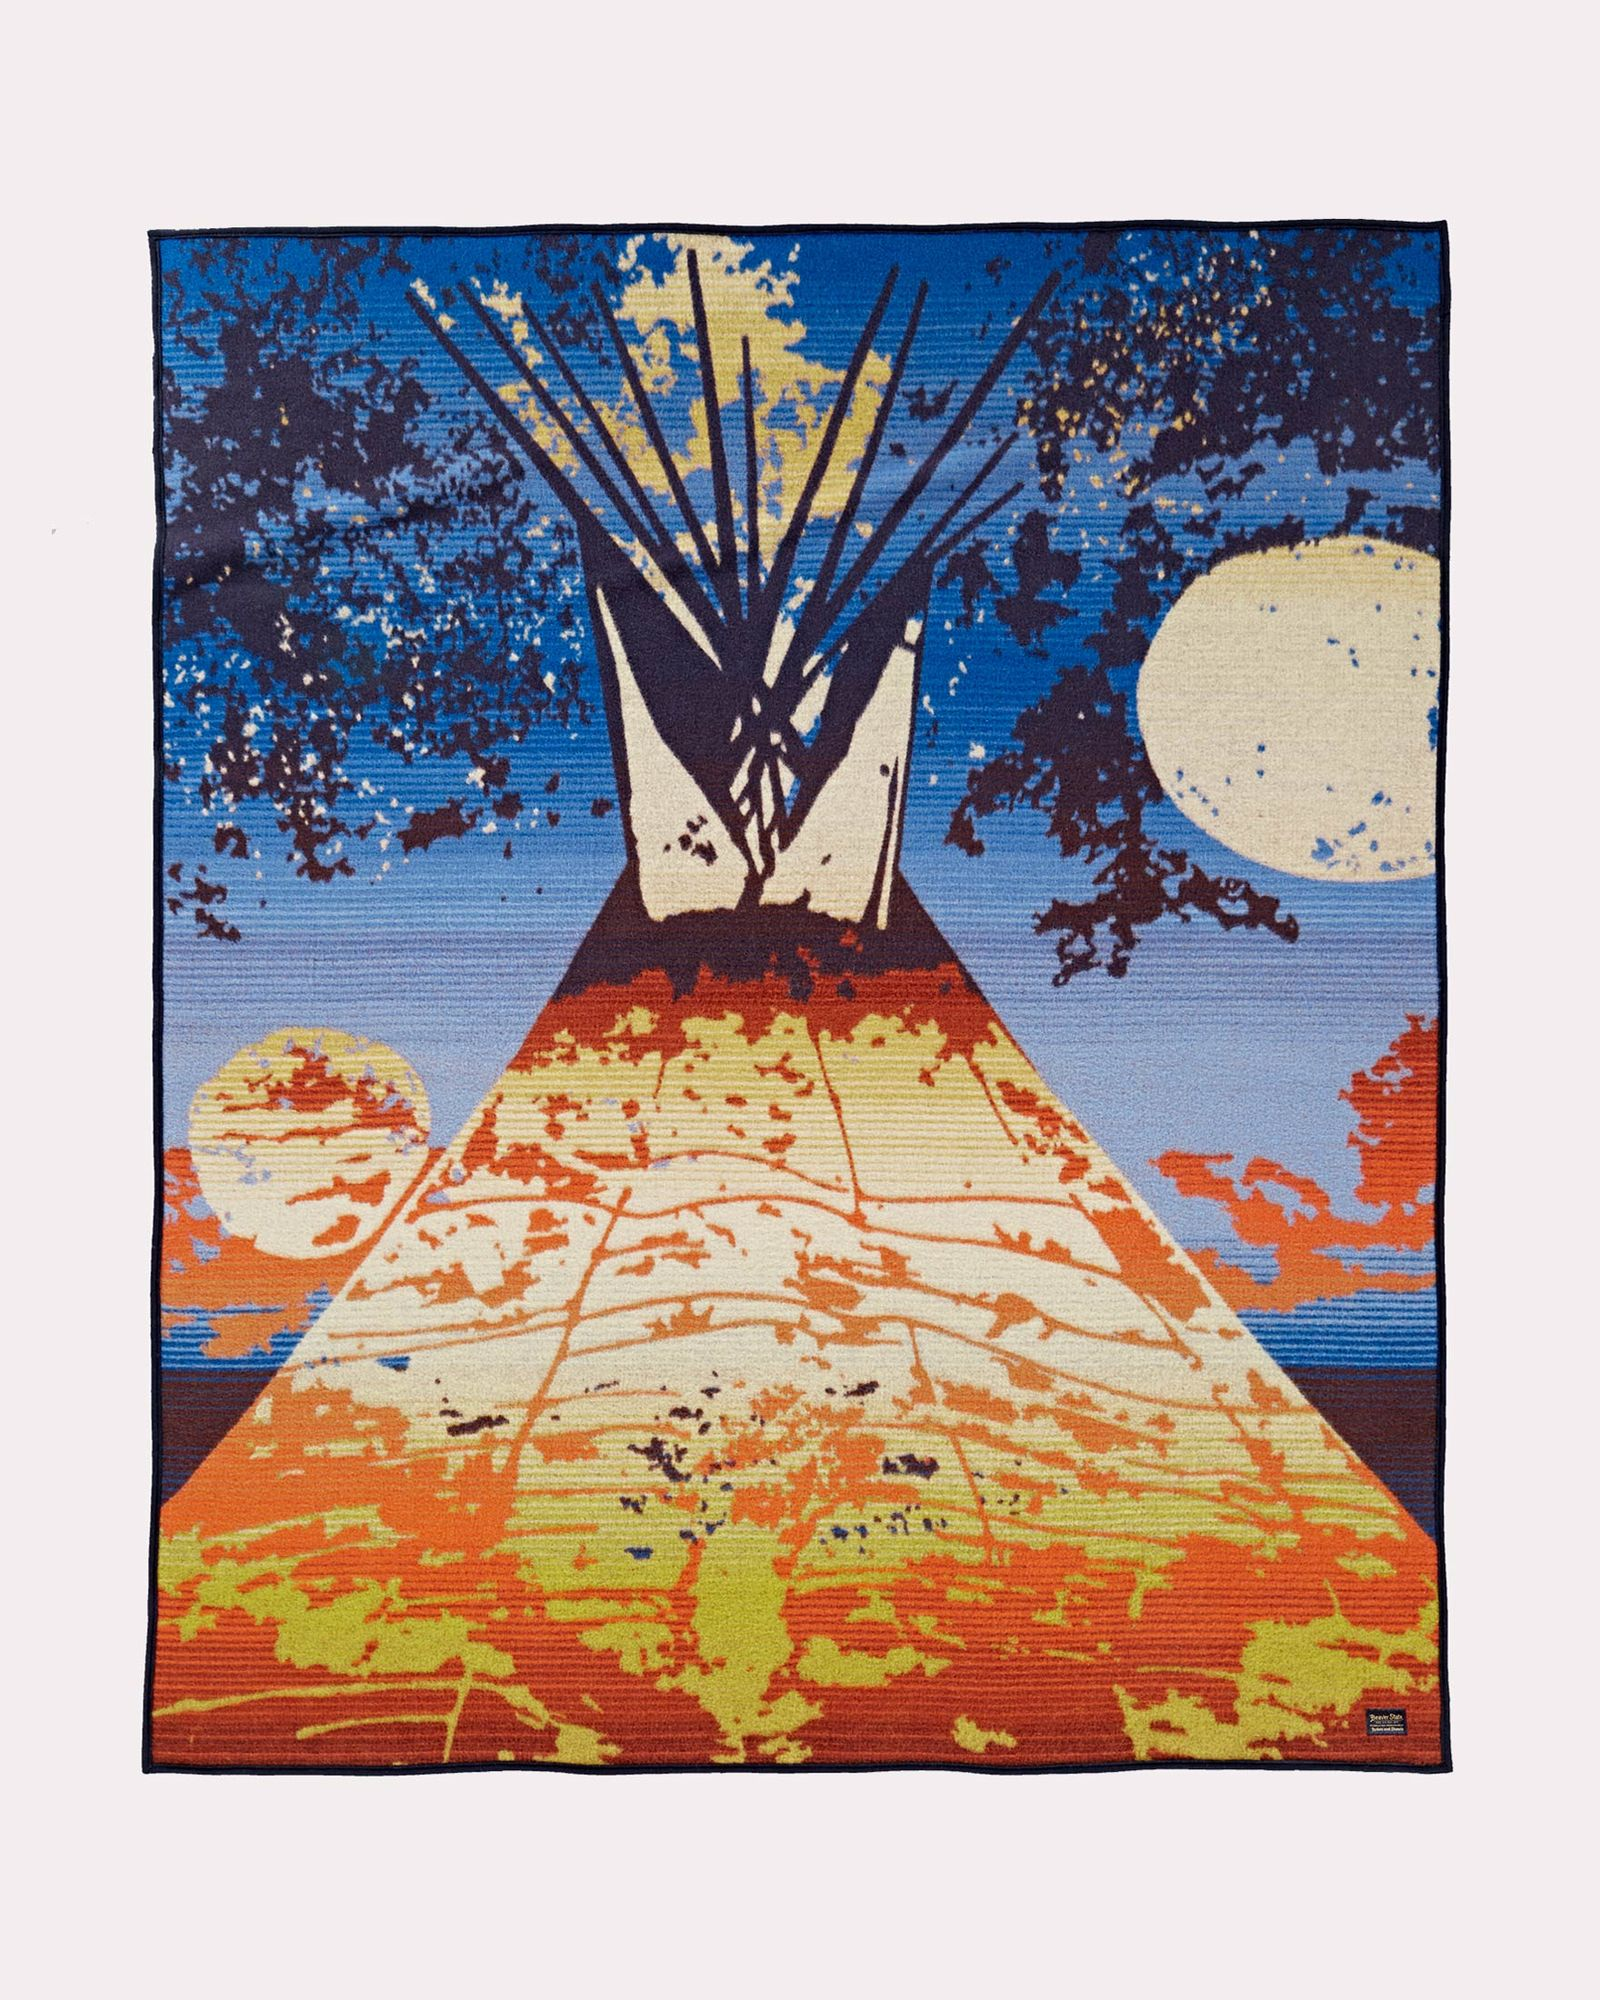 The Full Moon Lodge blanket by pendleton shows a bright orange and gold teepee against a dark blue sky, wit a full moon shining through tree branches. This blanket was designed by artist Starr Hardridge.